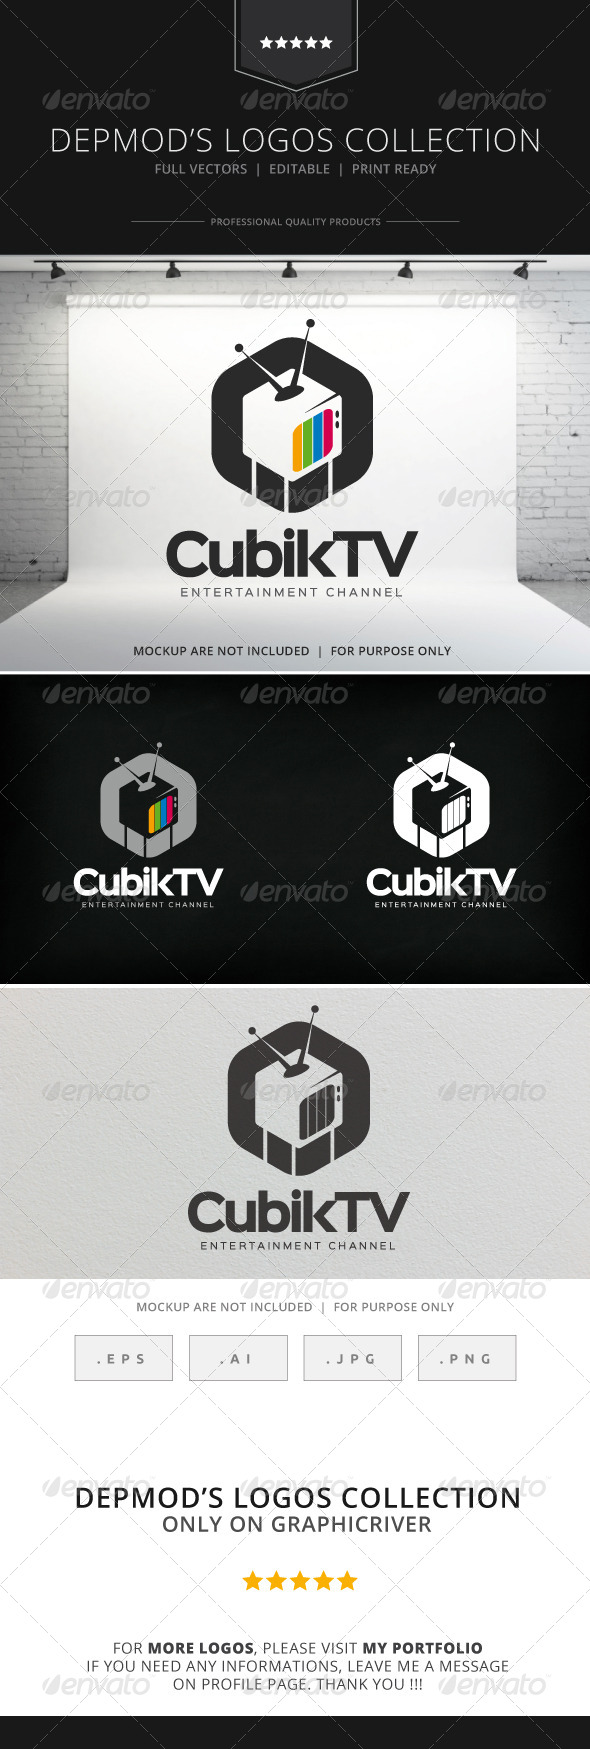 GraphicRiver Cubik TV Logo 8231364